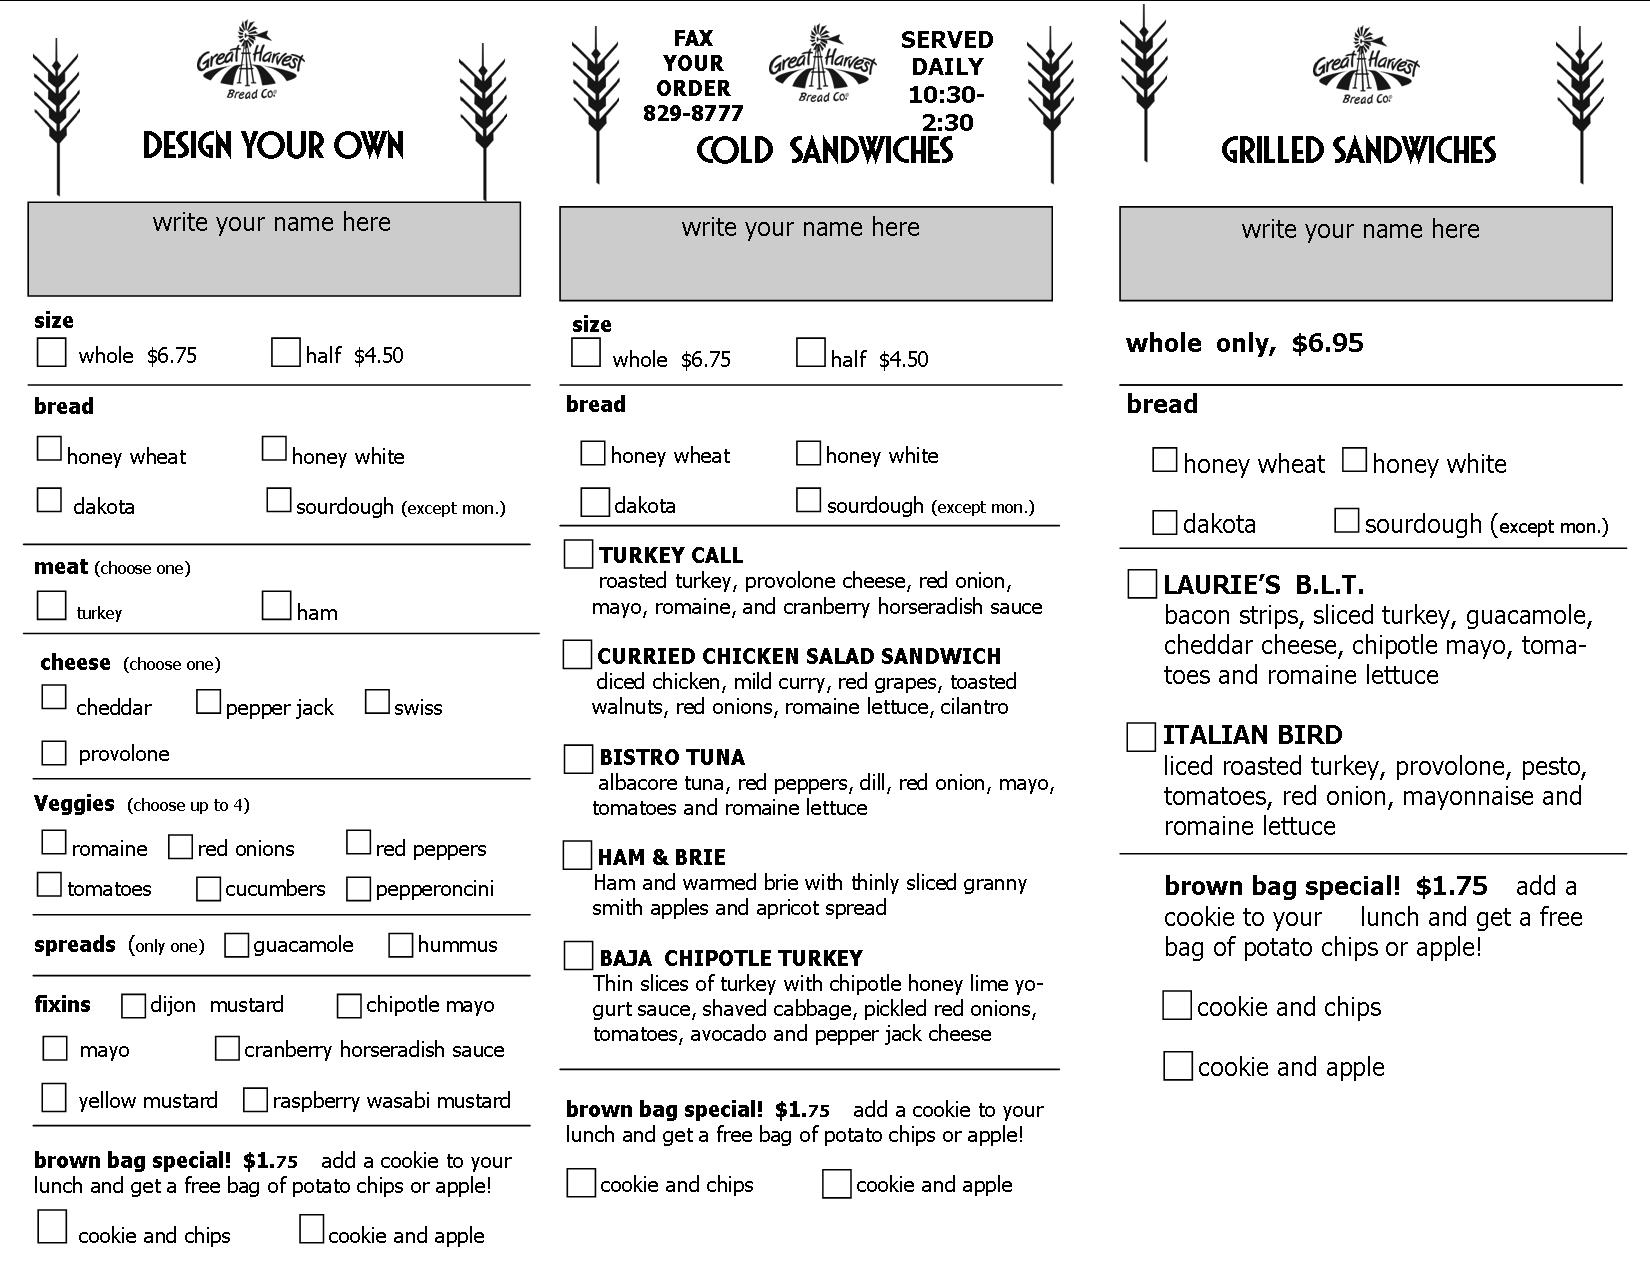 It's just an image of Agile Chipotle Printable Order Form